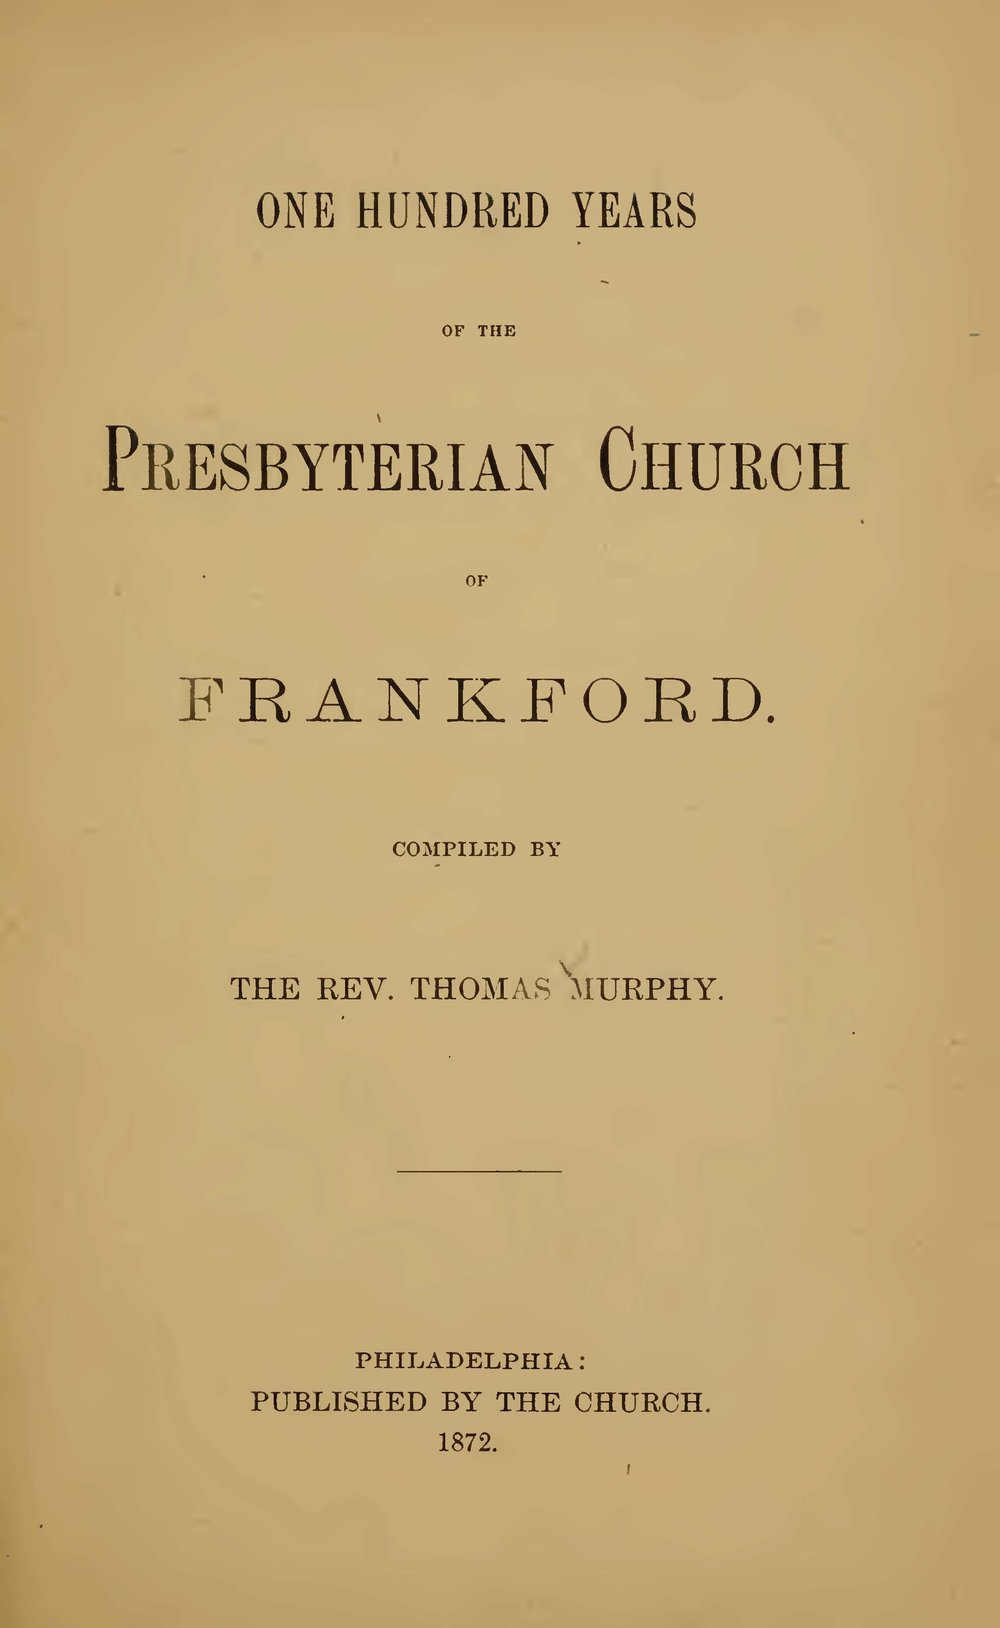 Murphy, Thomas, One Hundred Years of the Presbyterian Church of Frankford Title Page.jpg